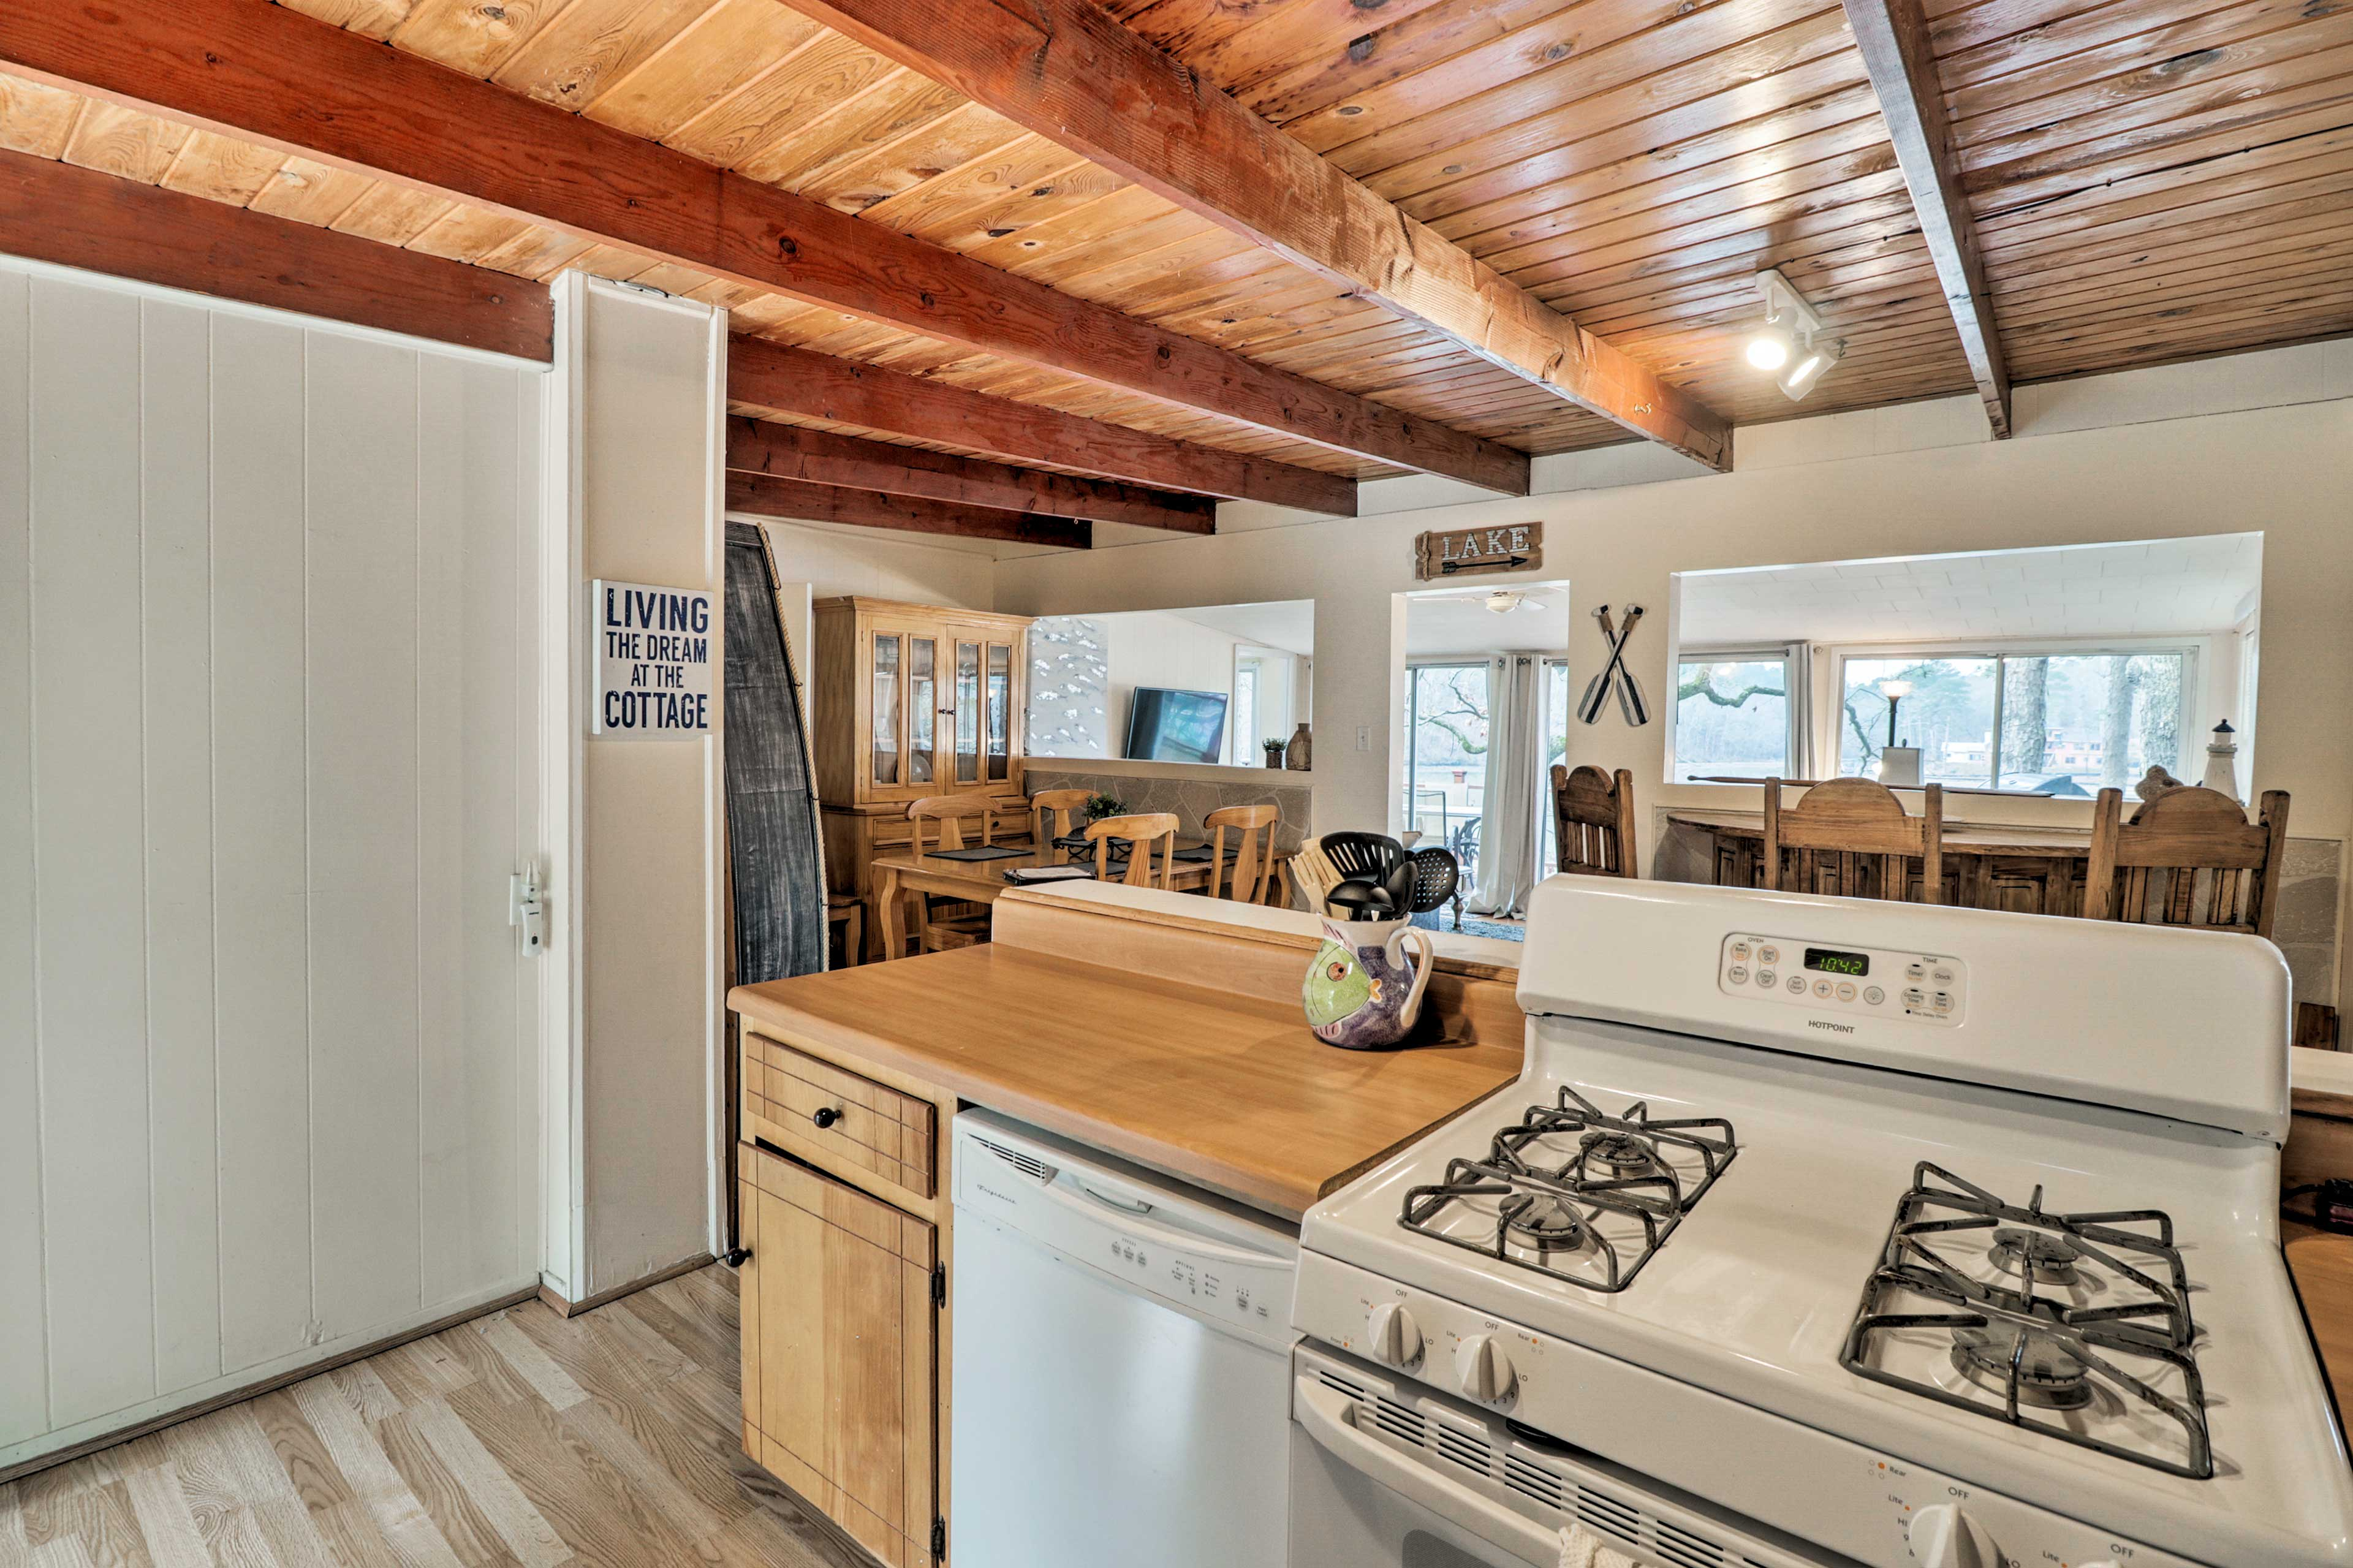 This fully equipped kitchen comes with cooking basics for guests' convenience!